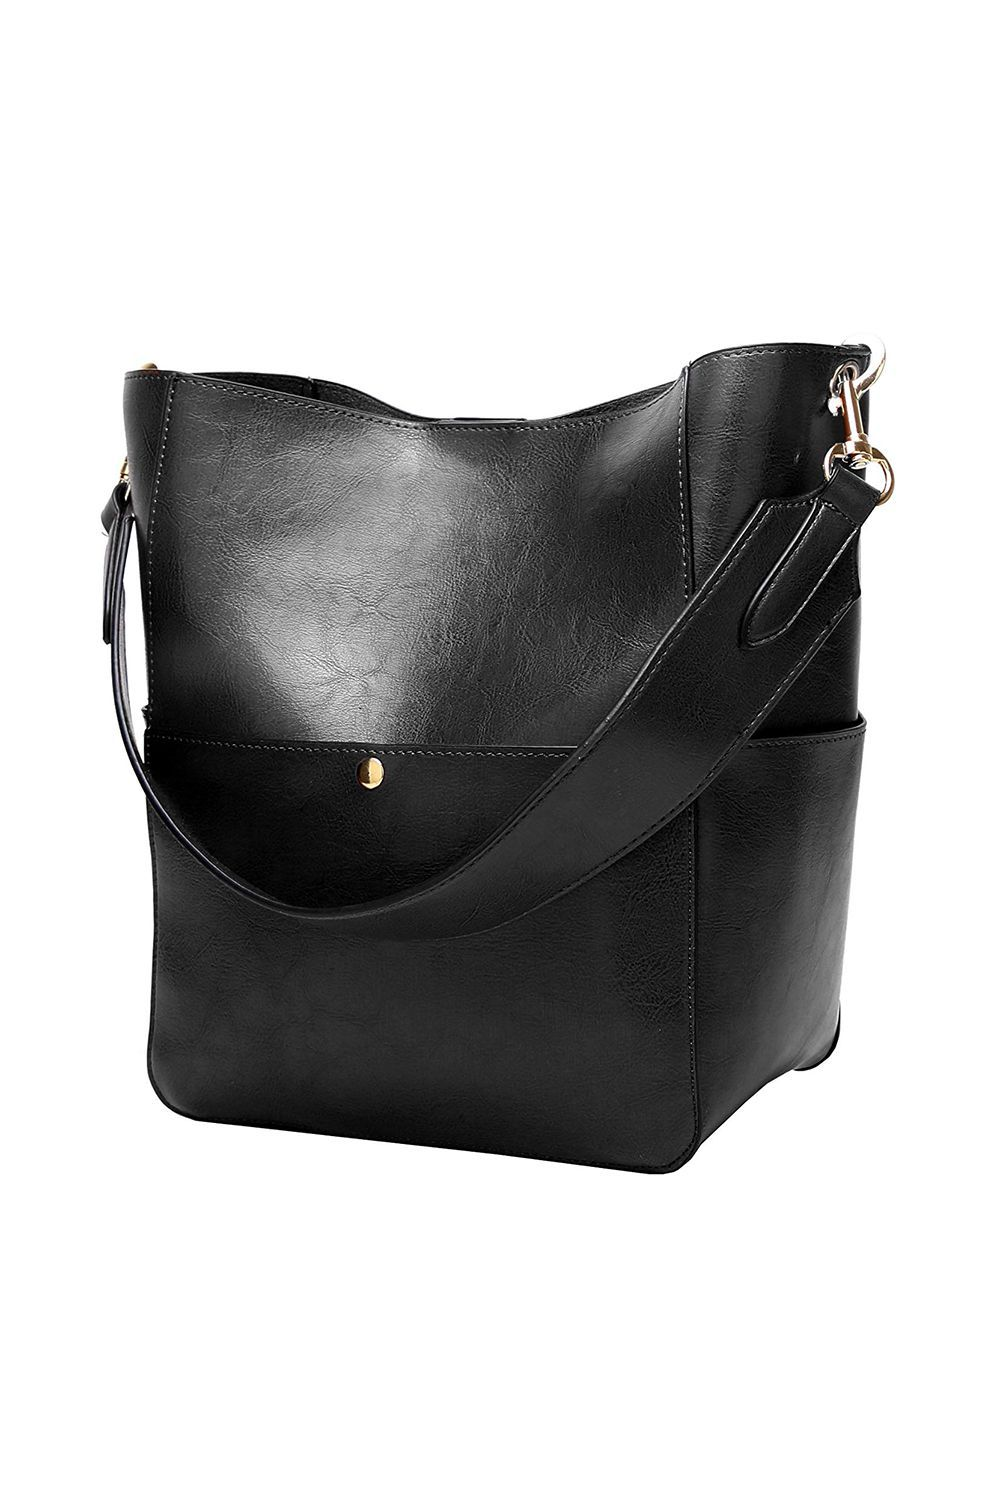 Best for Day to Night Satchel Top Handle Tote Bag Molodo amazon.com $159.99 $33.99 (79% off) SHOP IT This bucket tote comes in seven different colors and contains an inner zipped pouch that can be easily removed. The single-strap bag can definitely fit a laptop and a book or two.